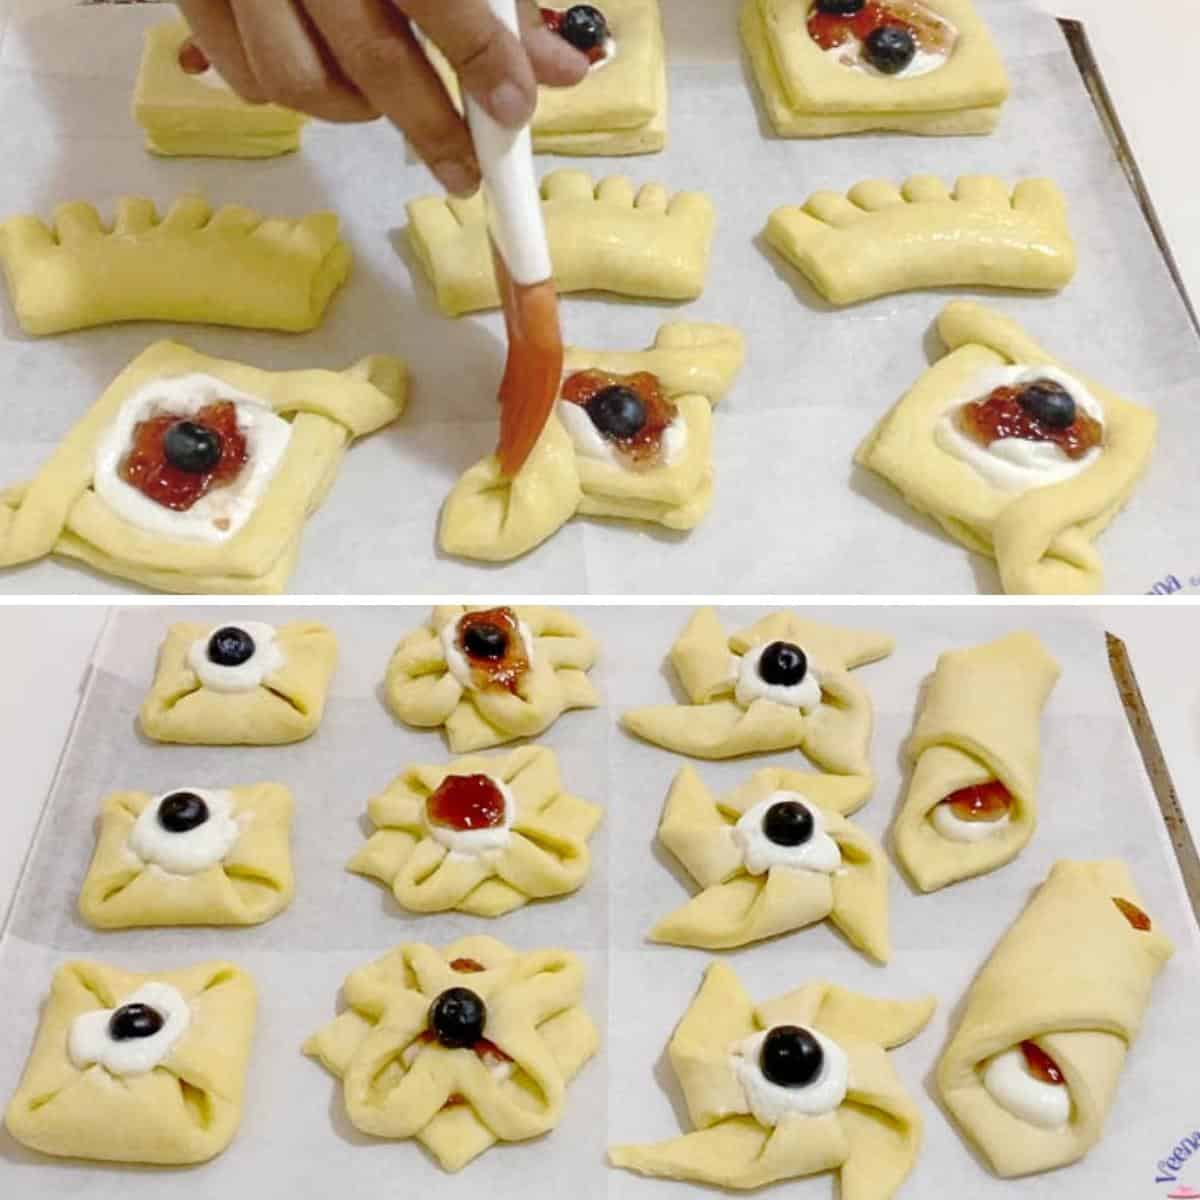 Danish pastry progress pictures - brush pastry with egg wash.